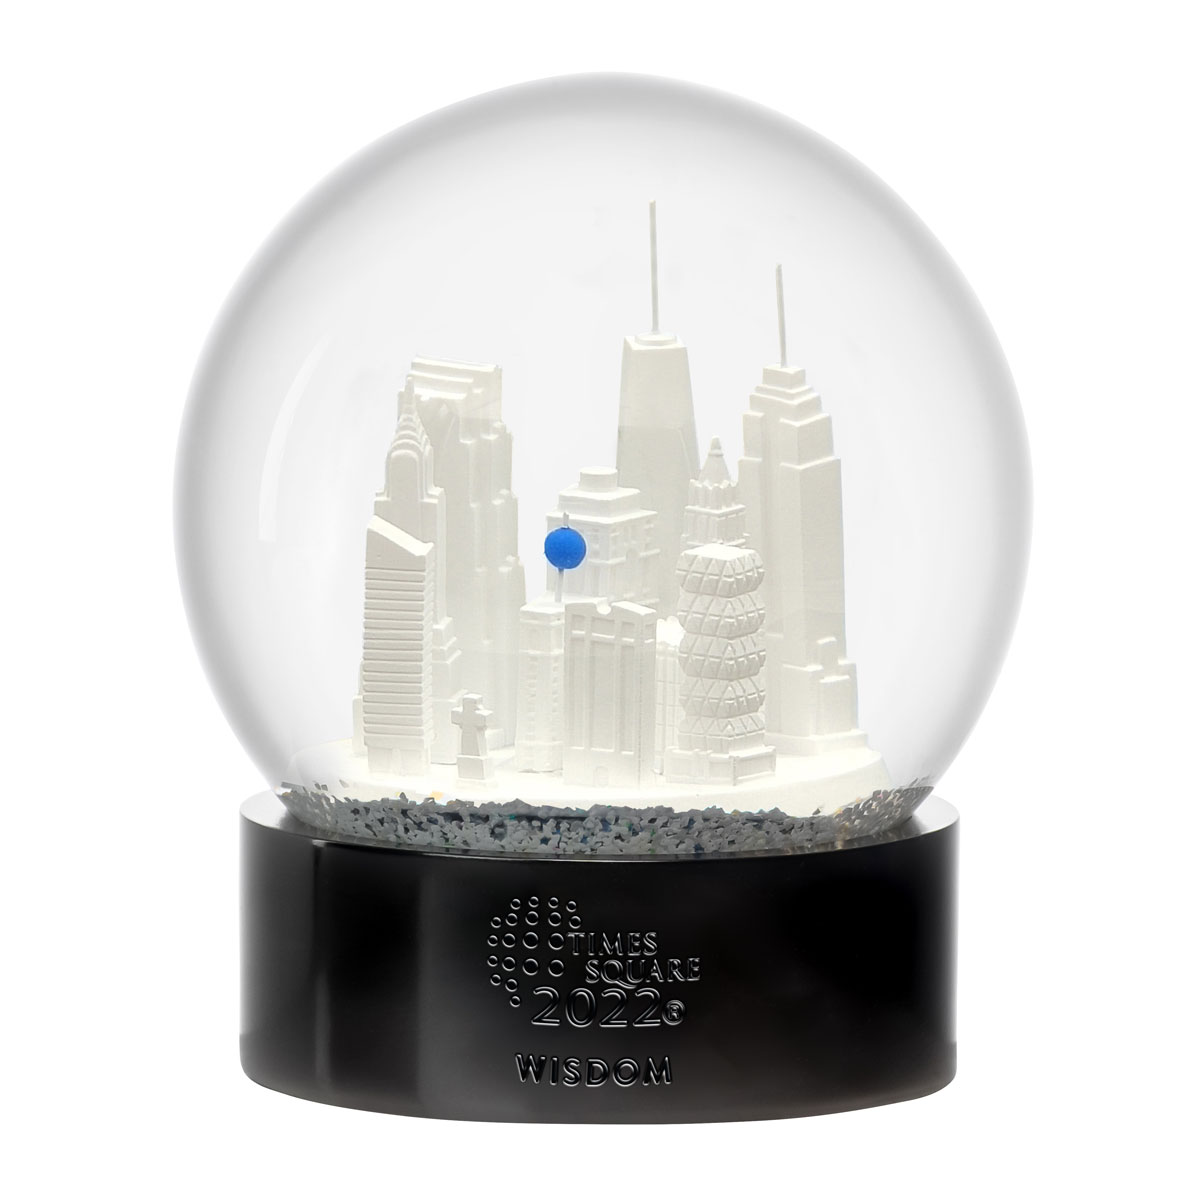 Waterford Crystal Times Square 2022 Gift of Wisdom Snow Globe